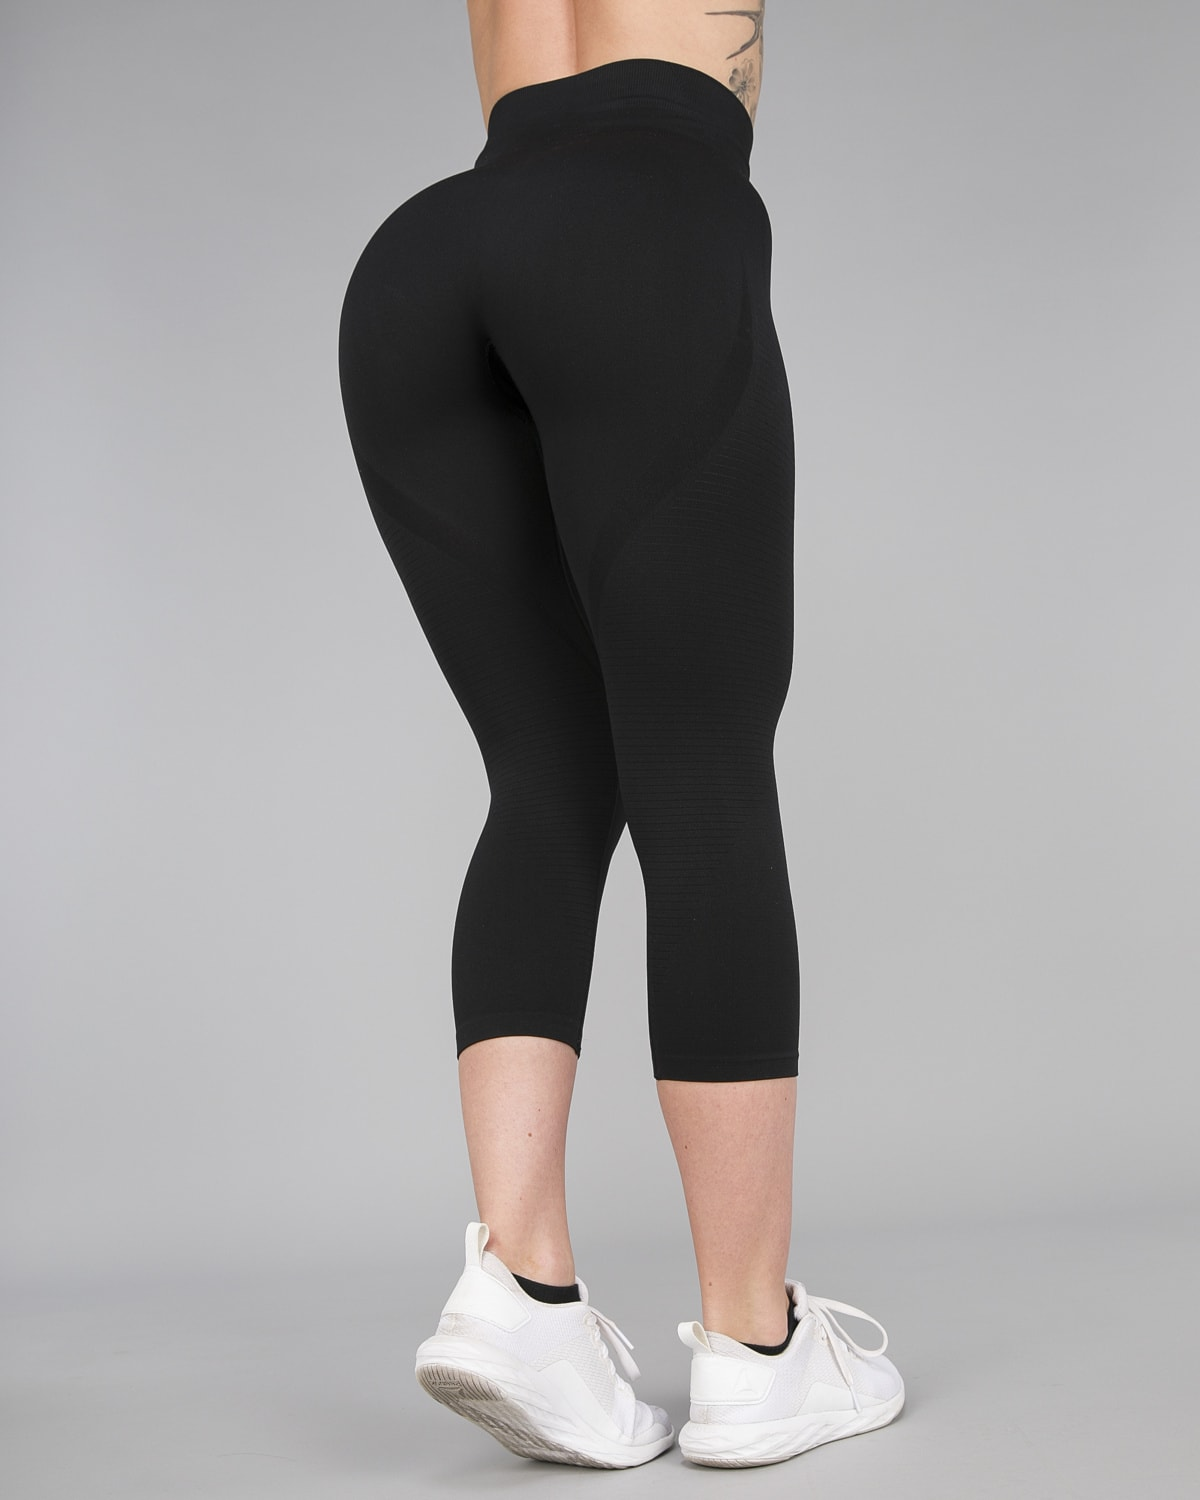 FAMME – Vortex Leggings 7:8 – Black16